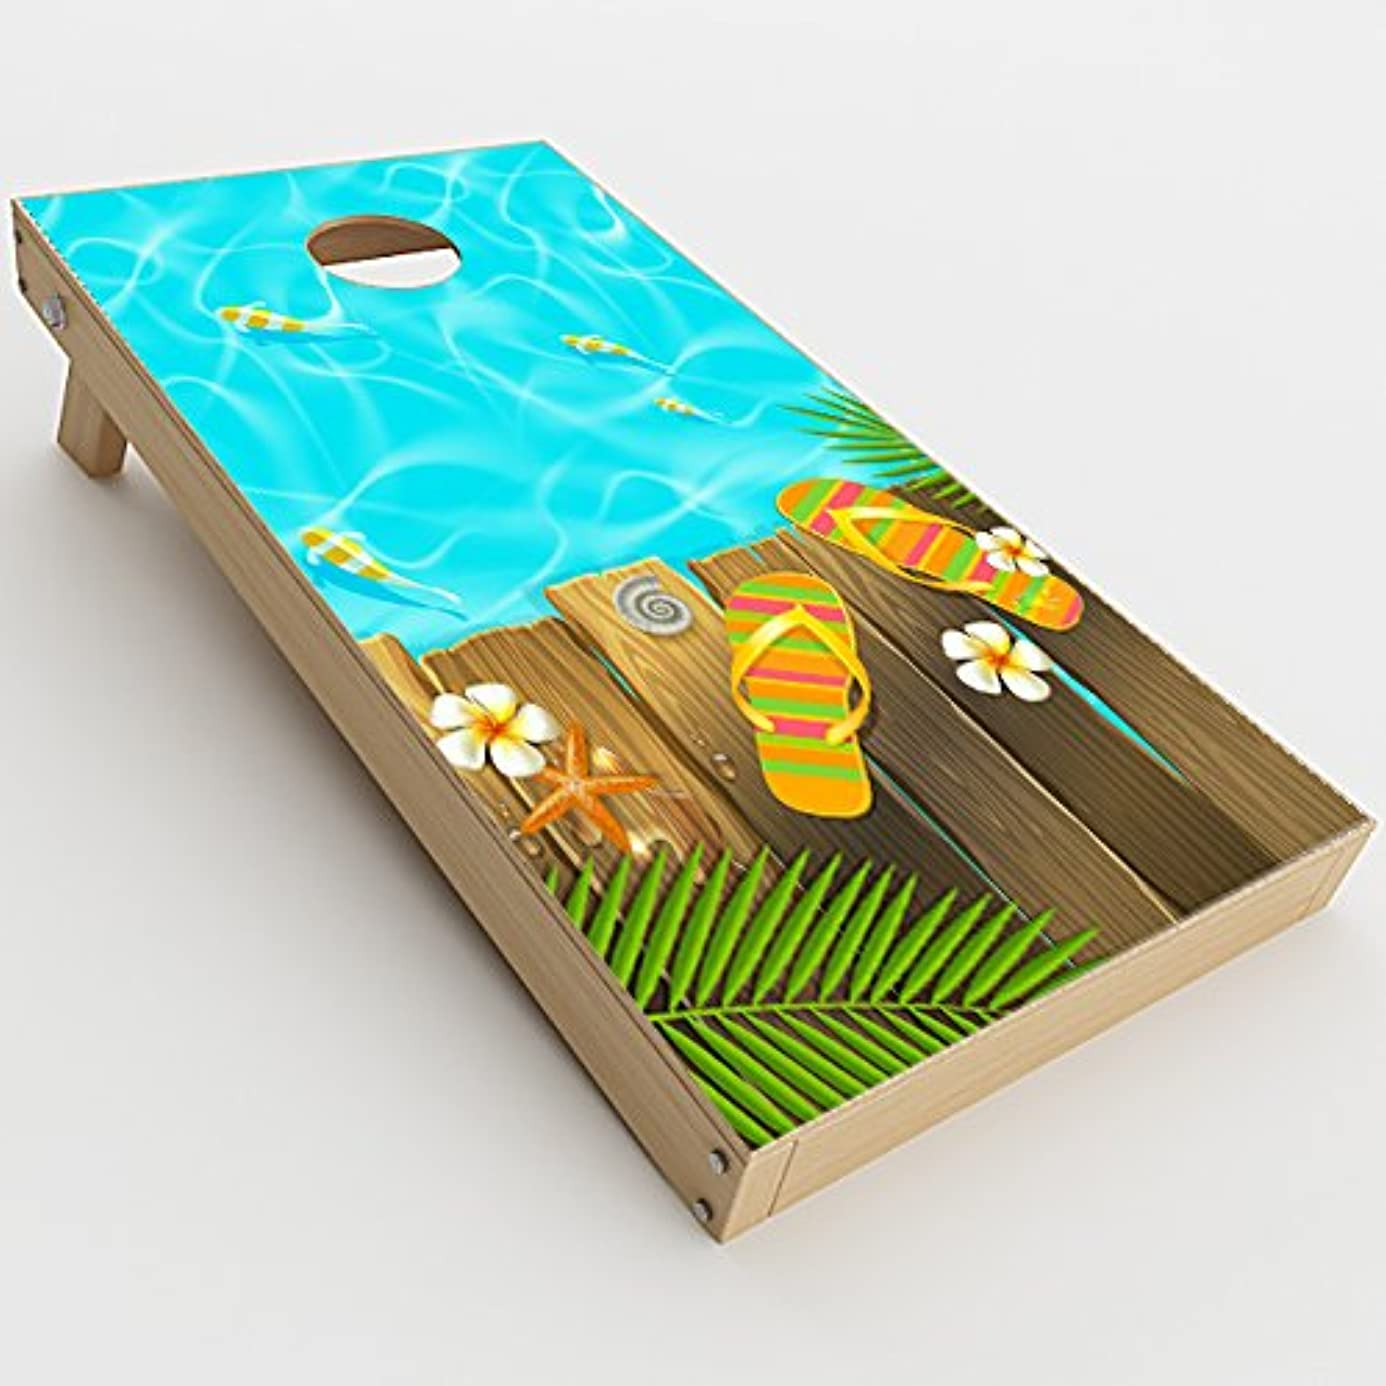 Skin Decals Vinyl Wrap for Cornhole Game Board Bag Toss (2xpcs.) / Flip Flops and Fish Summer